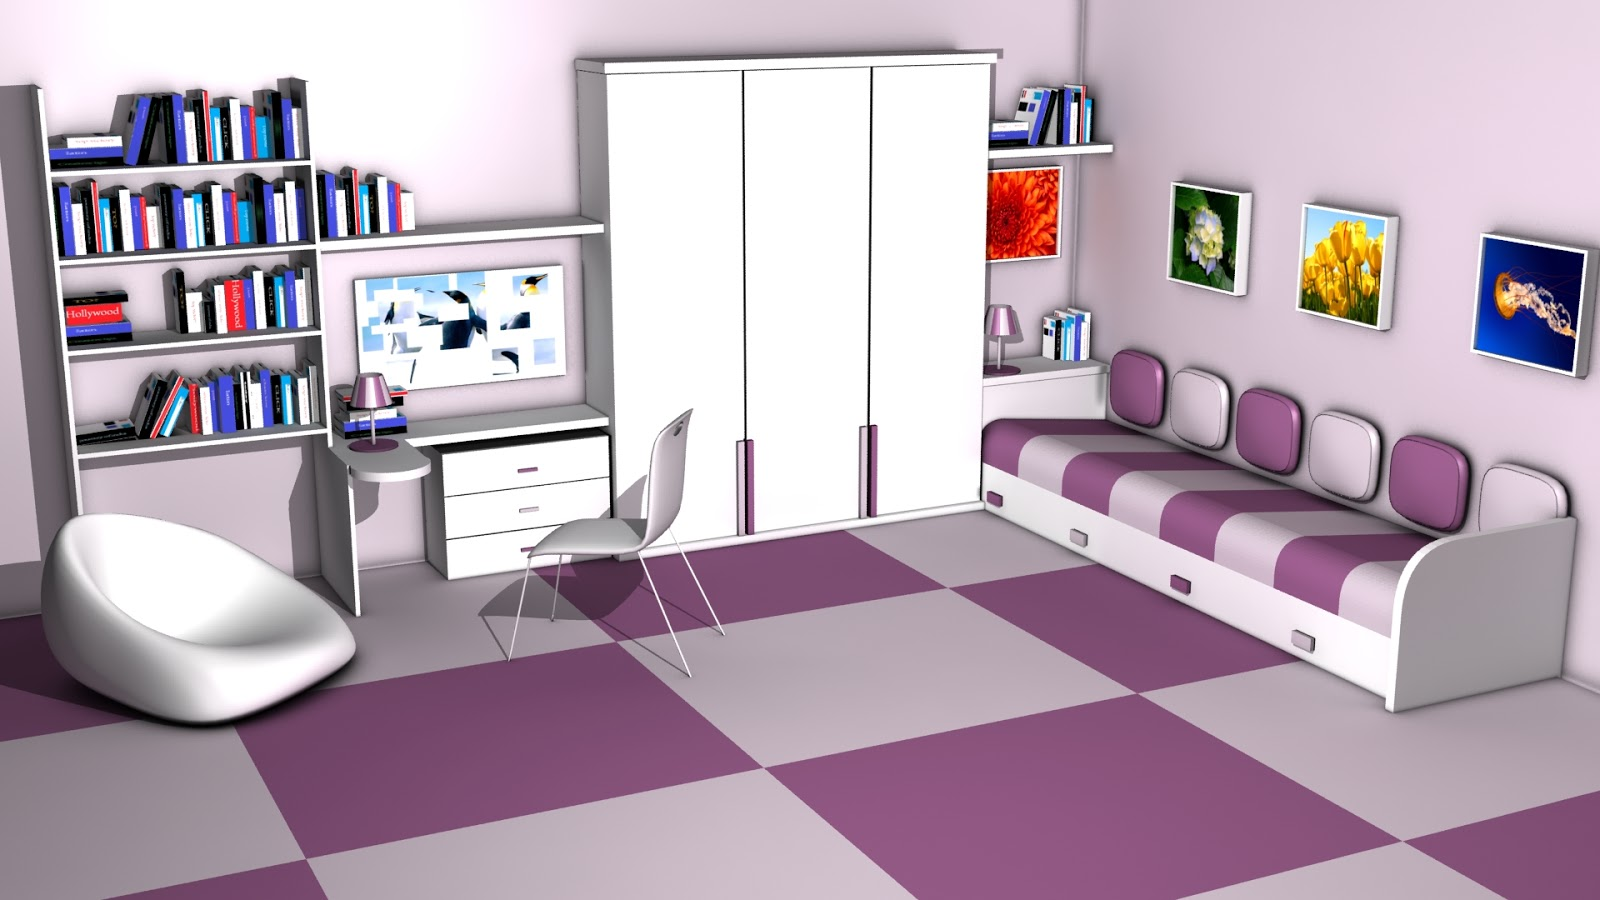 Sajid designer room interior design 3ds max 3d room maker